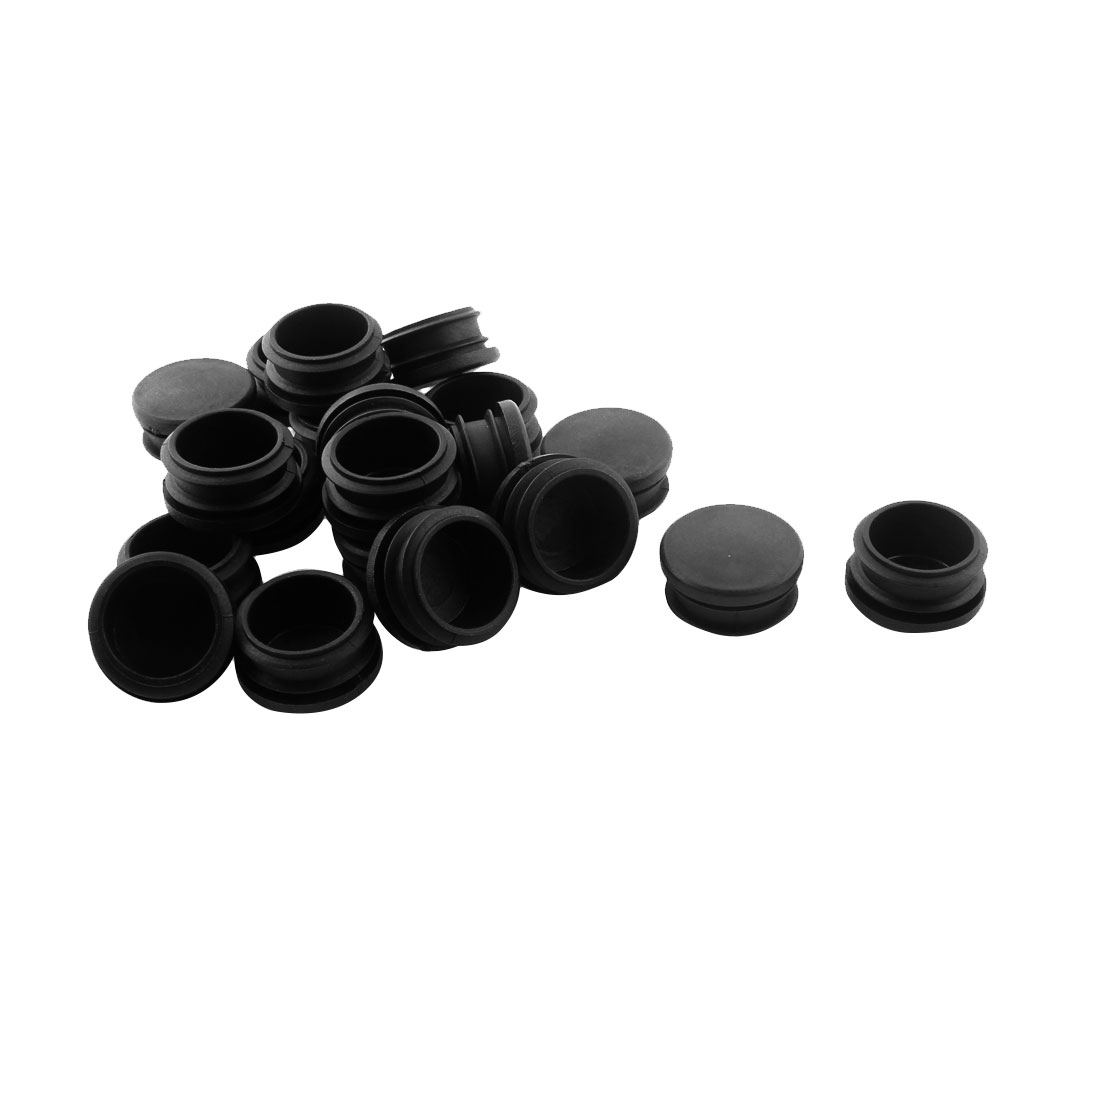 30mm Dia Plastic Round Table Chair Leg Feet Tube Pipe Insert Blanking End Cap Black 20pcs